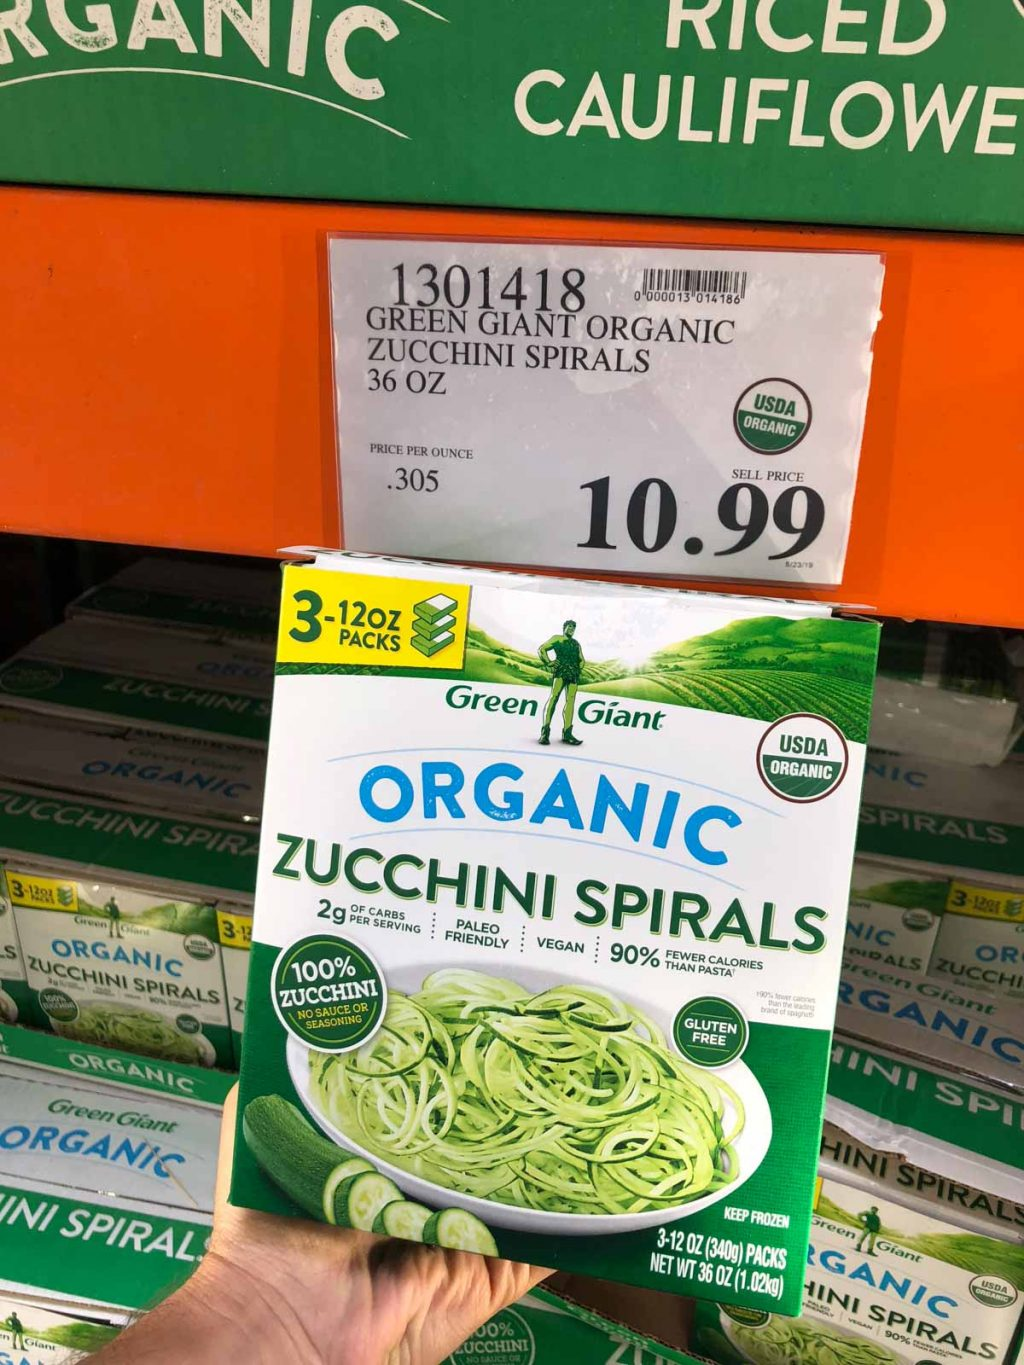 A hand holding a box of organic vegan frozen spirzelized zucchini noodles for $10.99 at Costco.